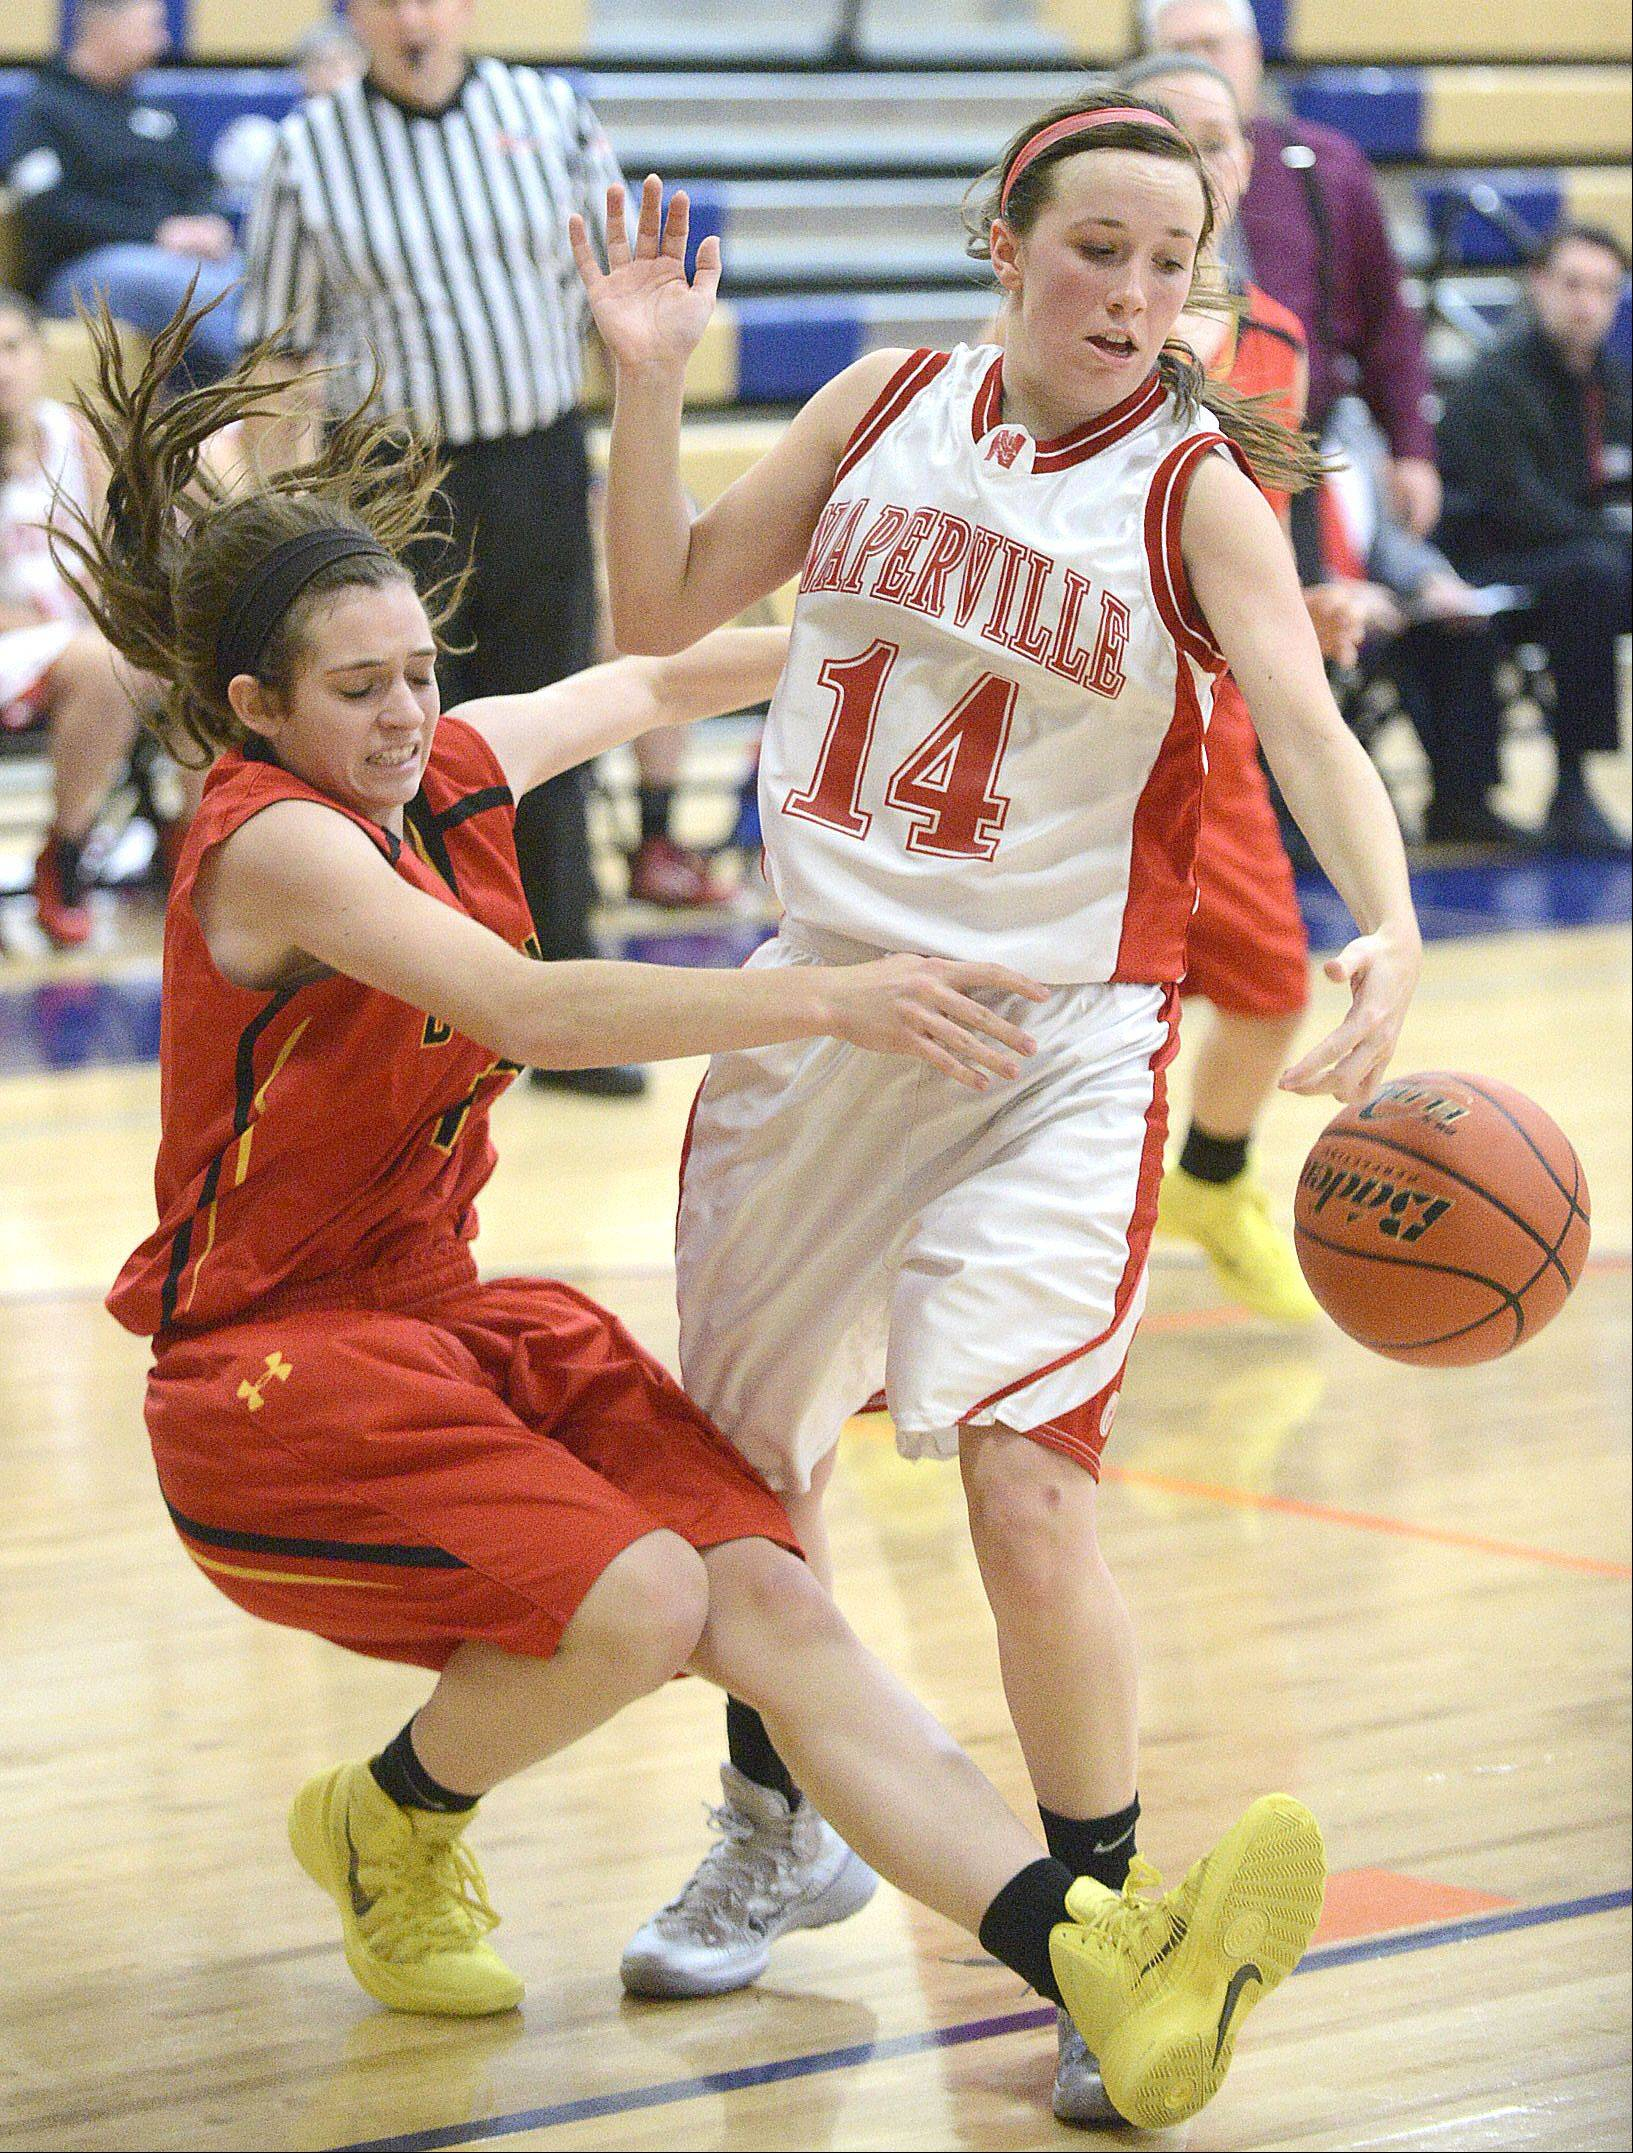 Batavia's Mackenzie Foster falls to the ground during a pass around Naperville Central's Emily Kraft in the third quarter on Saturday.